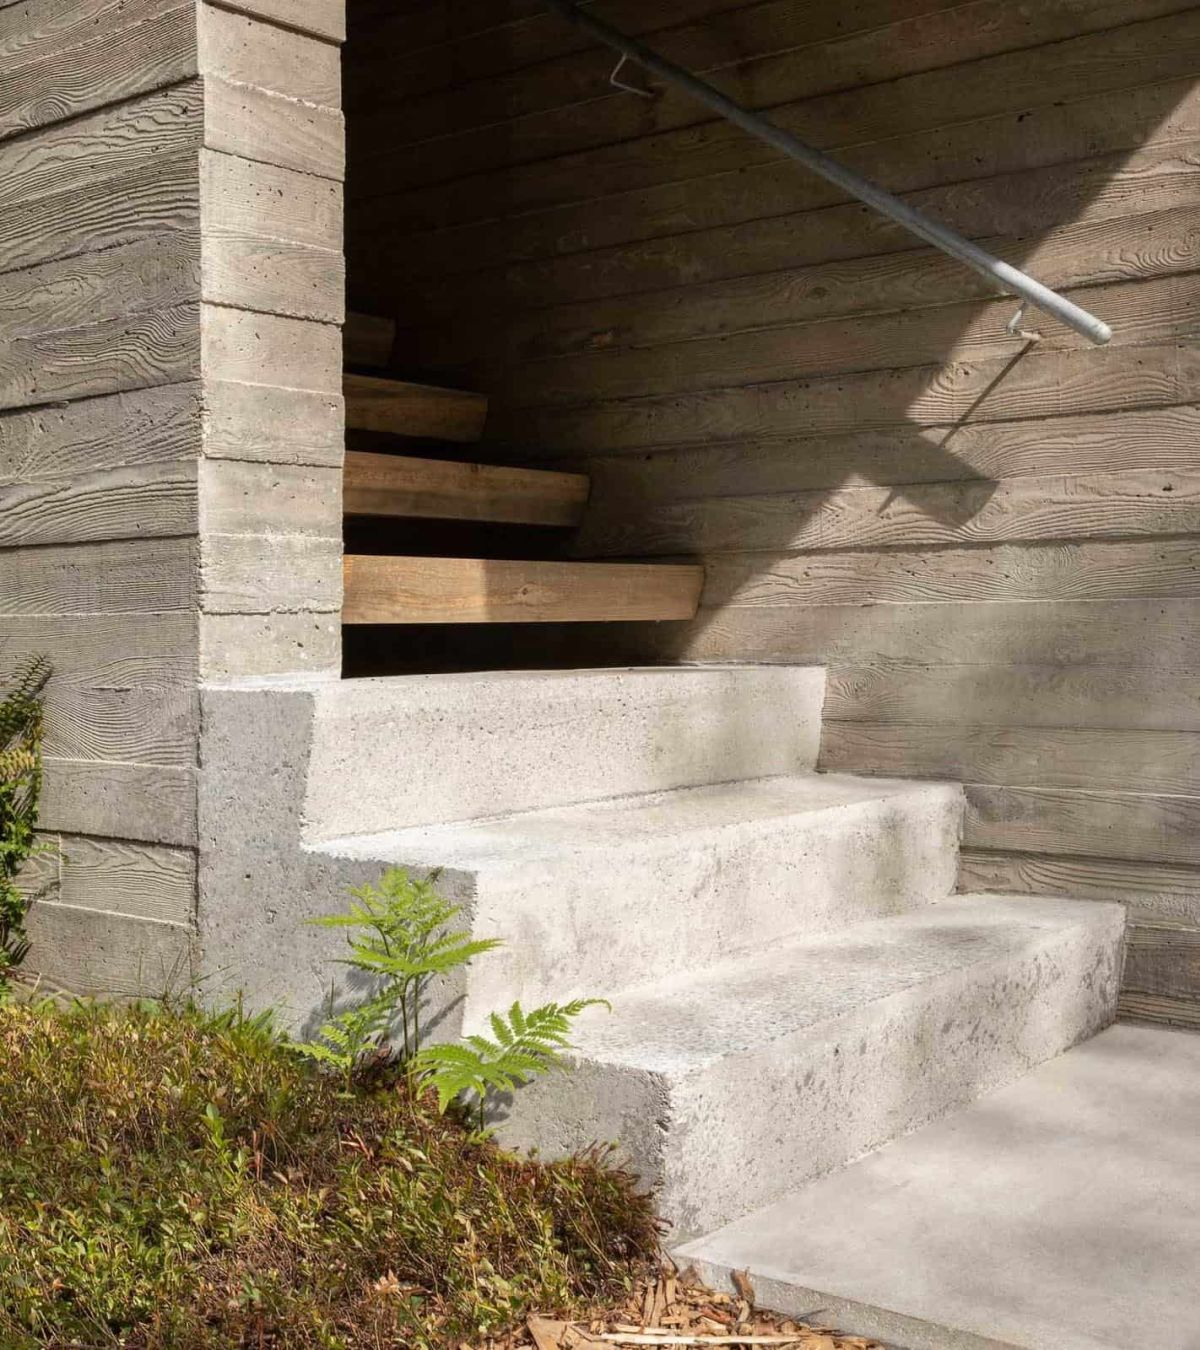 The entrance is marked by a set of concrete stairs which then transition into a wooden staircase